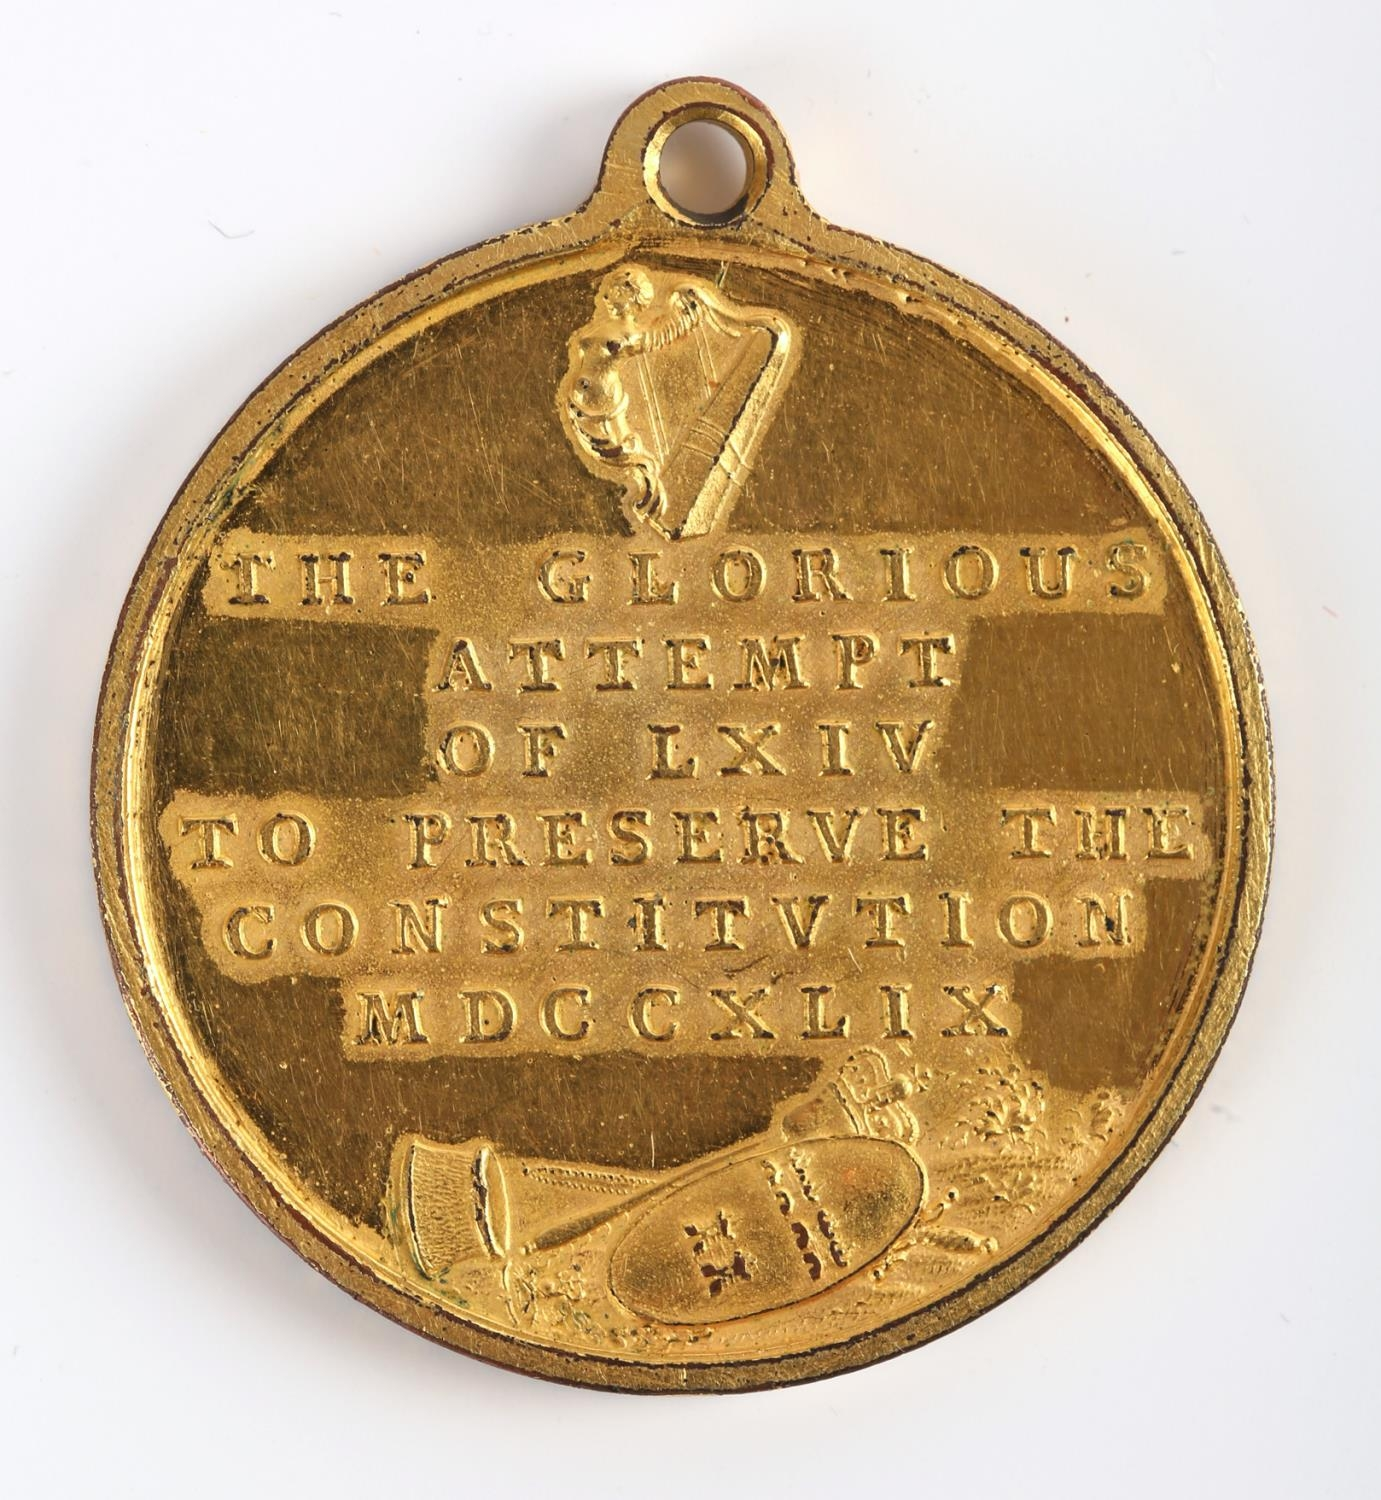 Dublin, The Corporation of Dublin and Dr Charles Lucas, 1749, a gilt medal by T. Pingo, Justice - Image 2 of 2